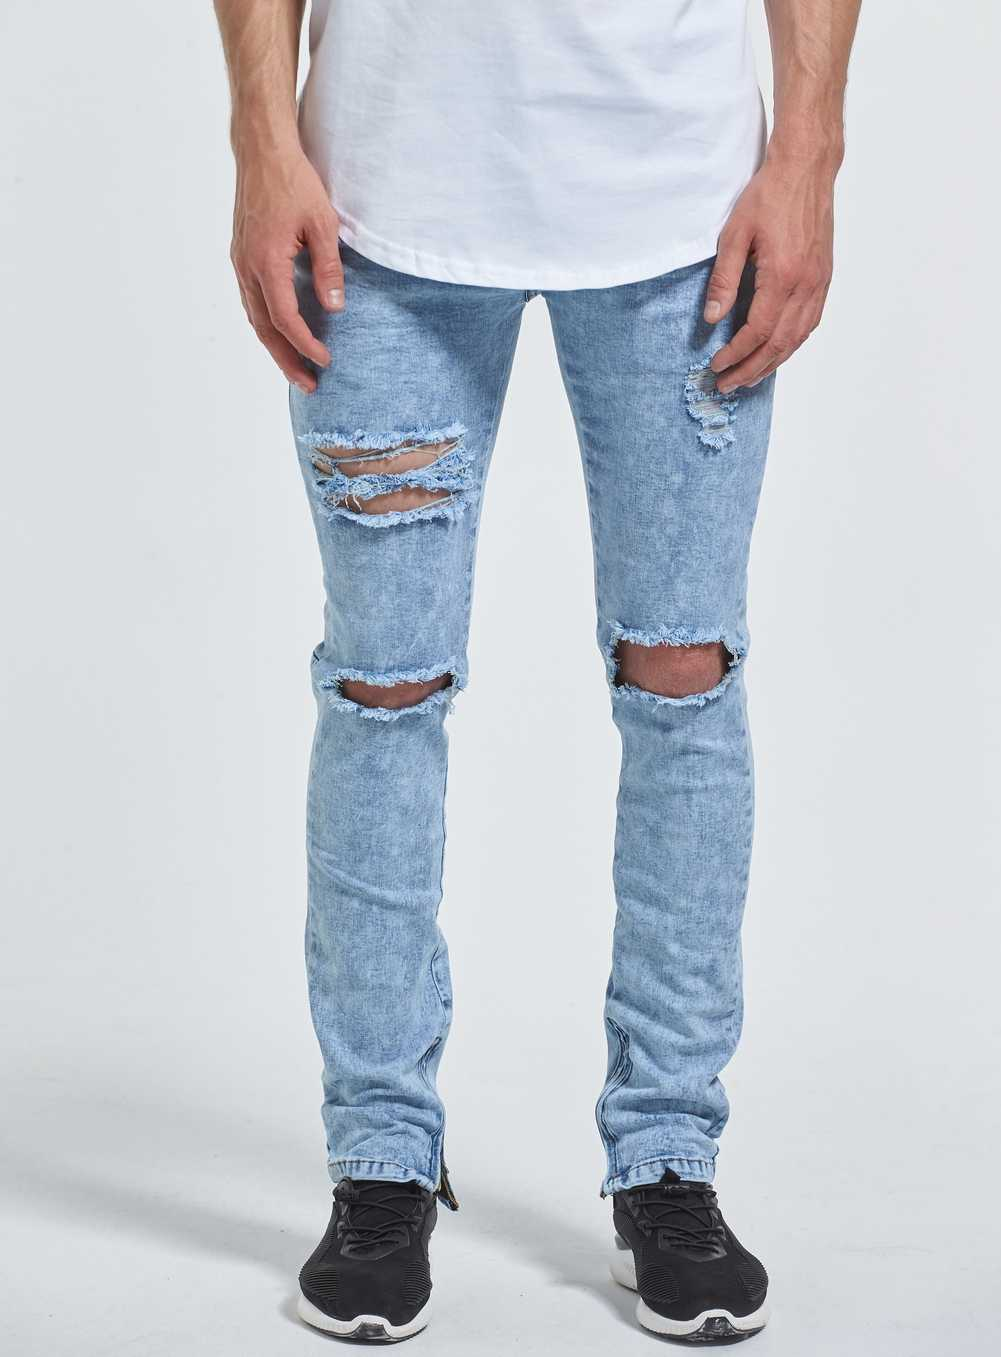 8103ce5bef52 ... 2017 New Ripped Ankle Zipper Skinny Jeans Men Fashion Casual Designer  Brand Urban Distressed Destroyed Hole ...